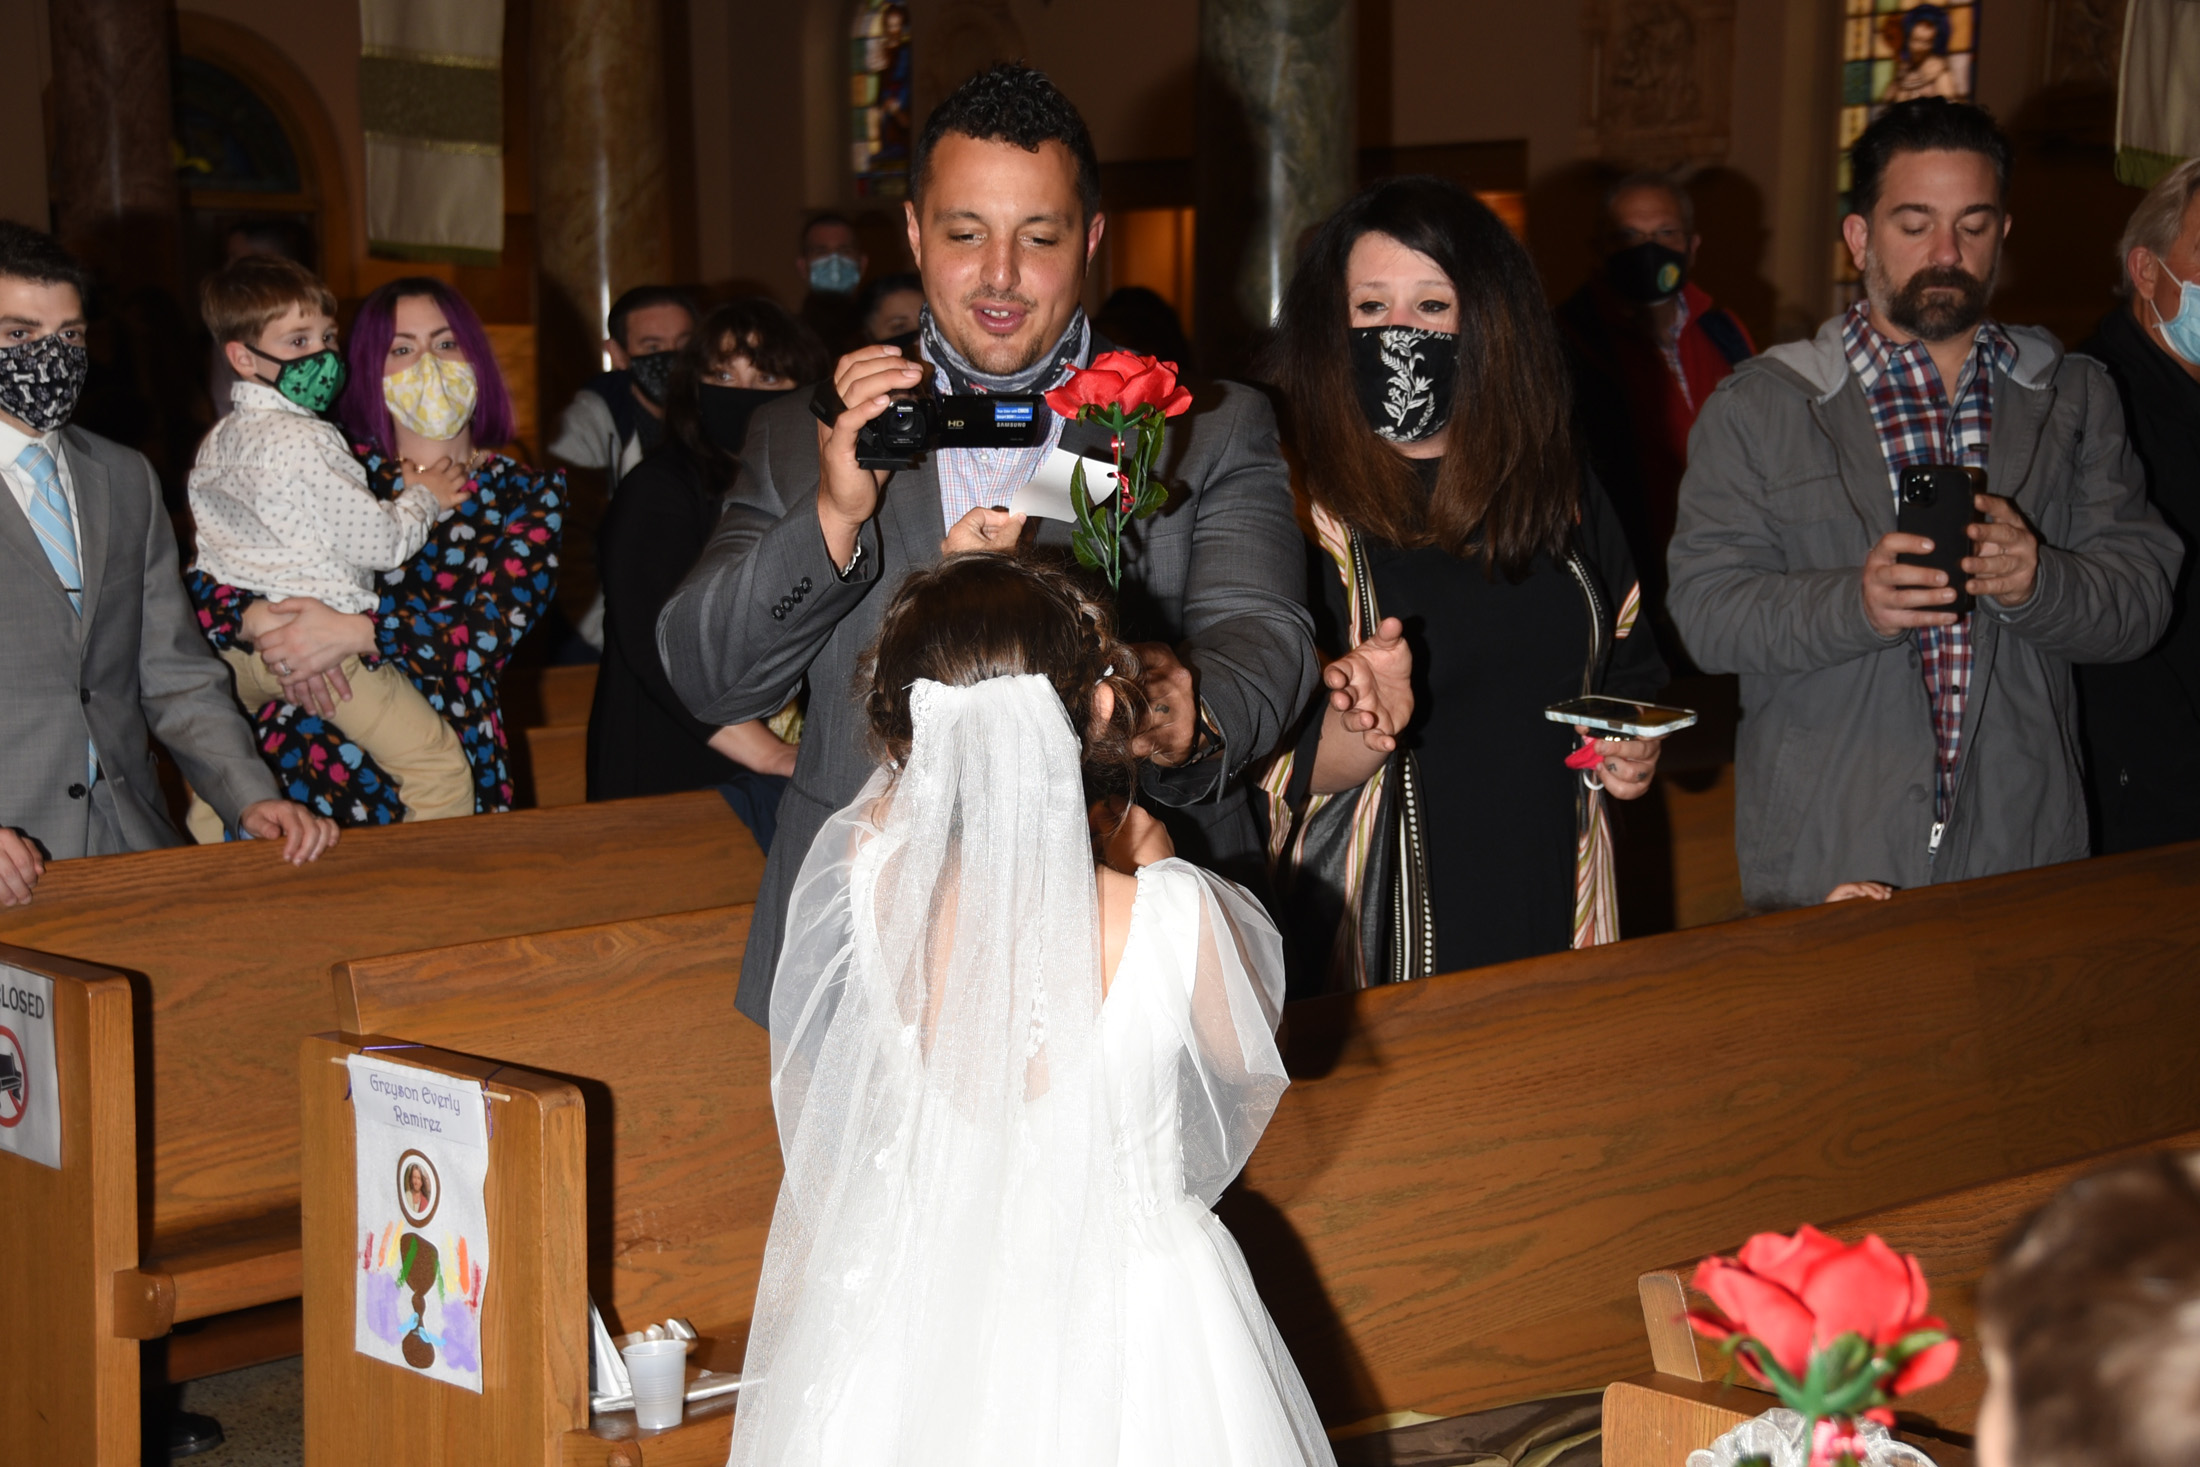 FIRST-COMMUNION-MAY-2-2021-1001001229